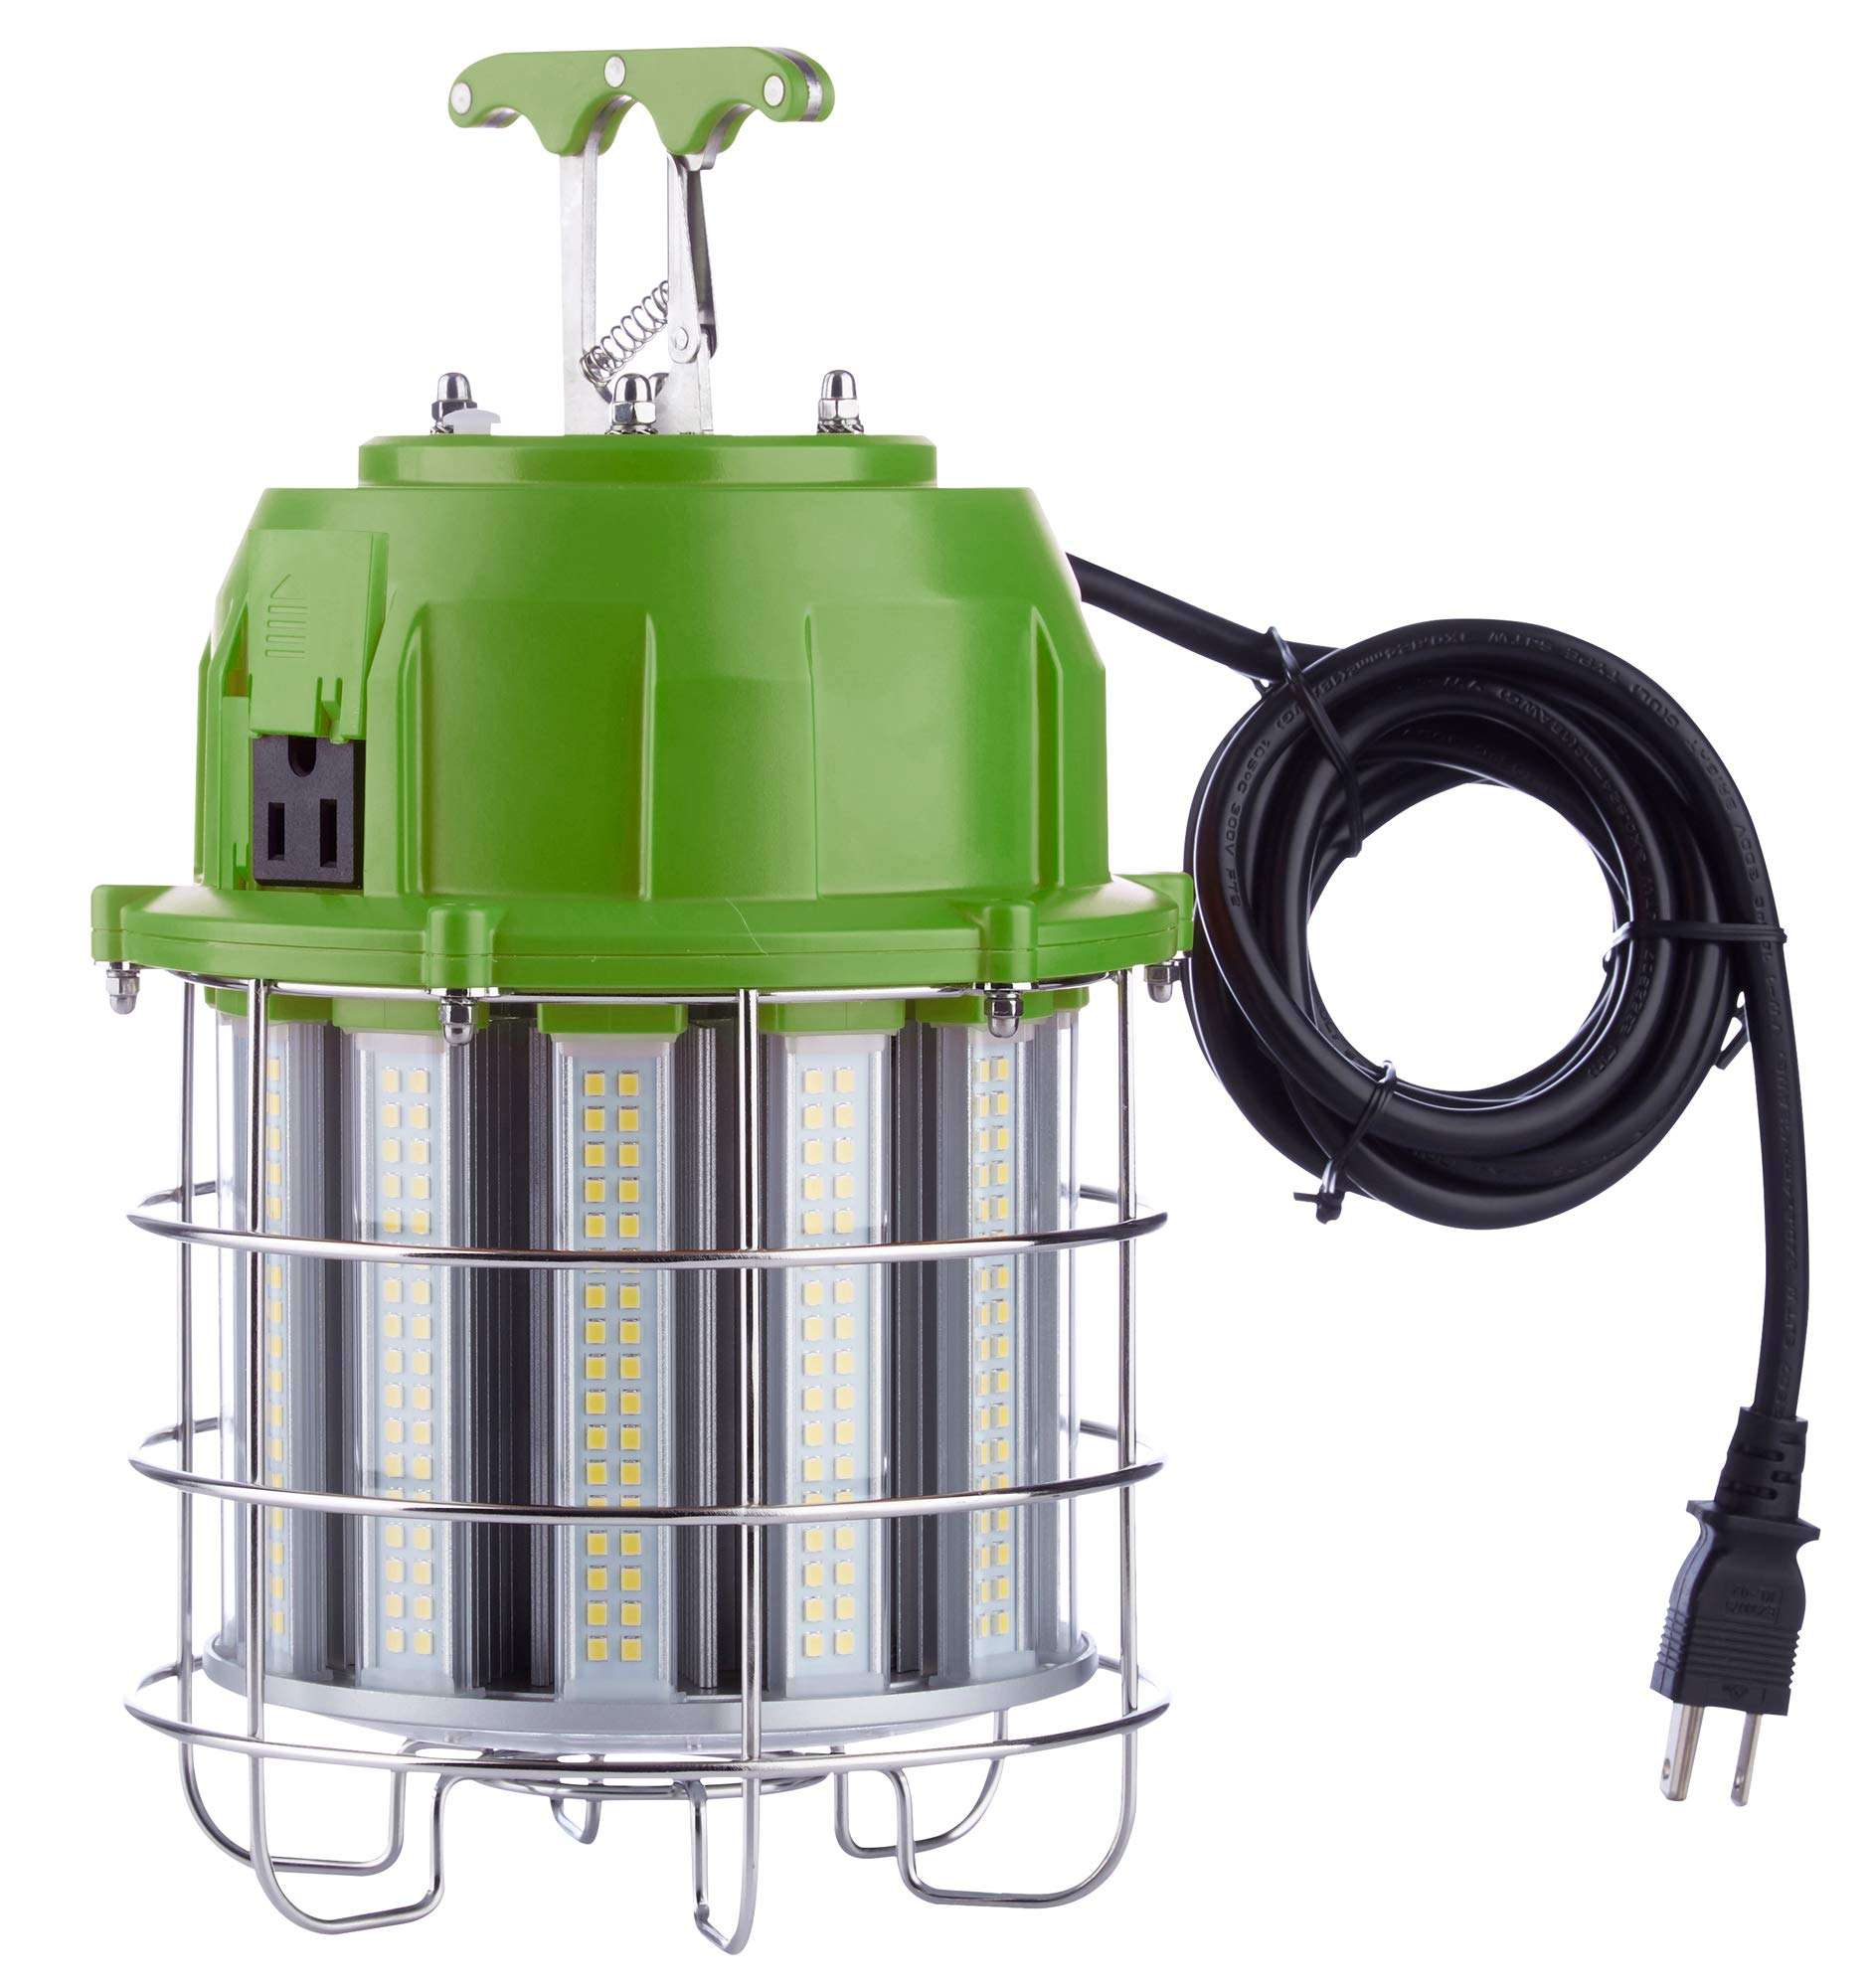 PowerSmith PTLK52-100 New 12,000 Lumen High Bay Temporary LED Daisy Chain Hanging Work Light with Metal Clasp and 10 ft Power Cord Medium Green